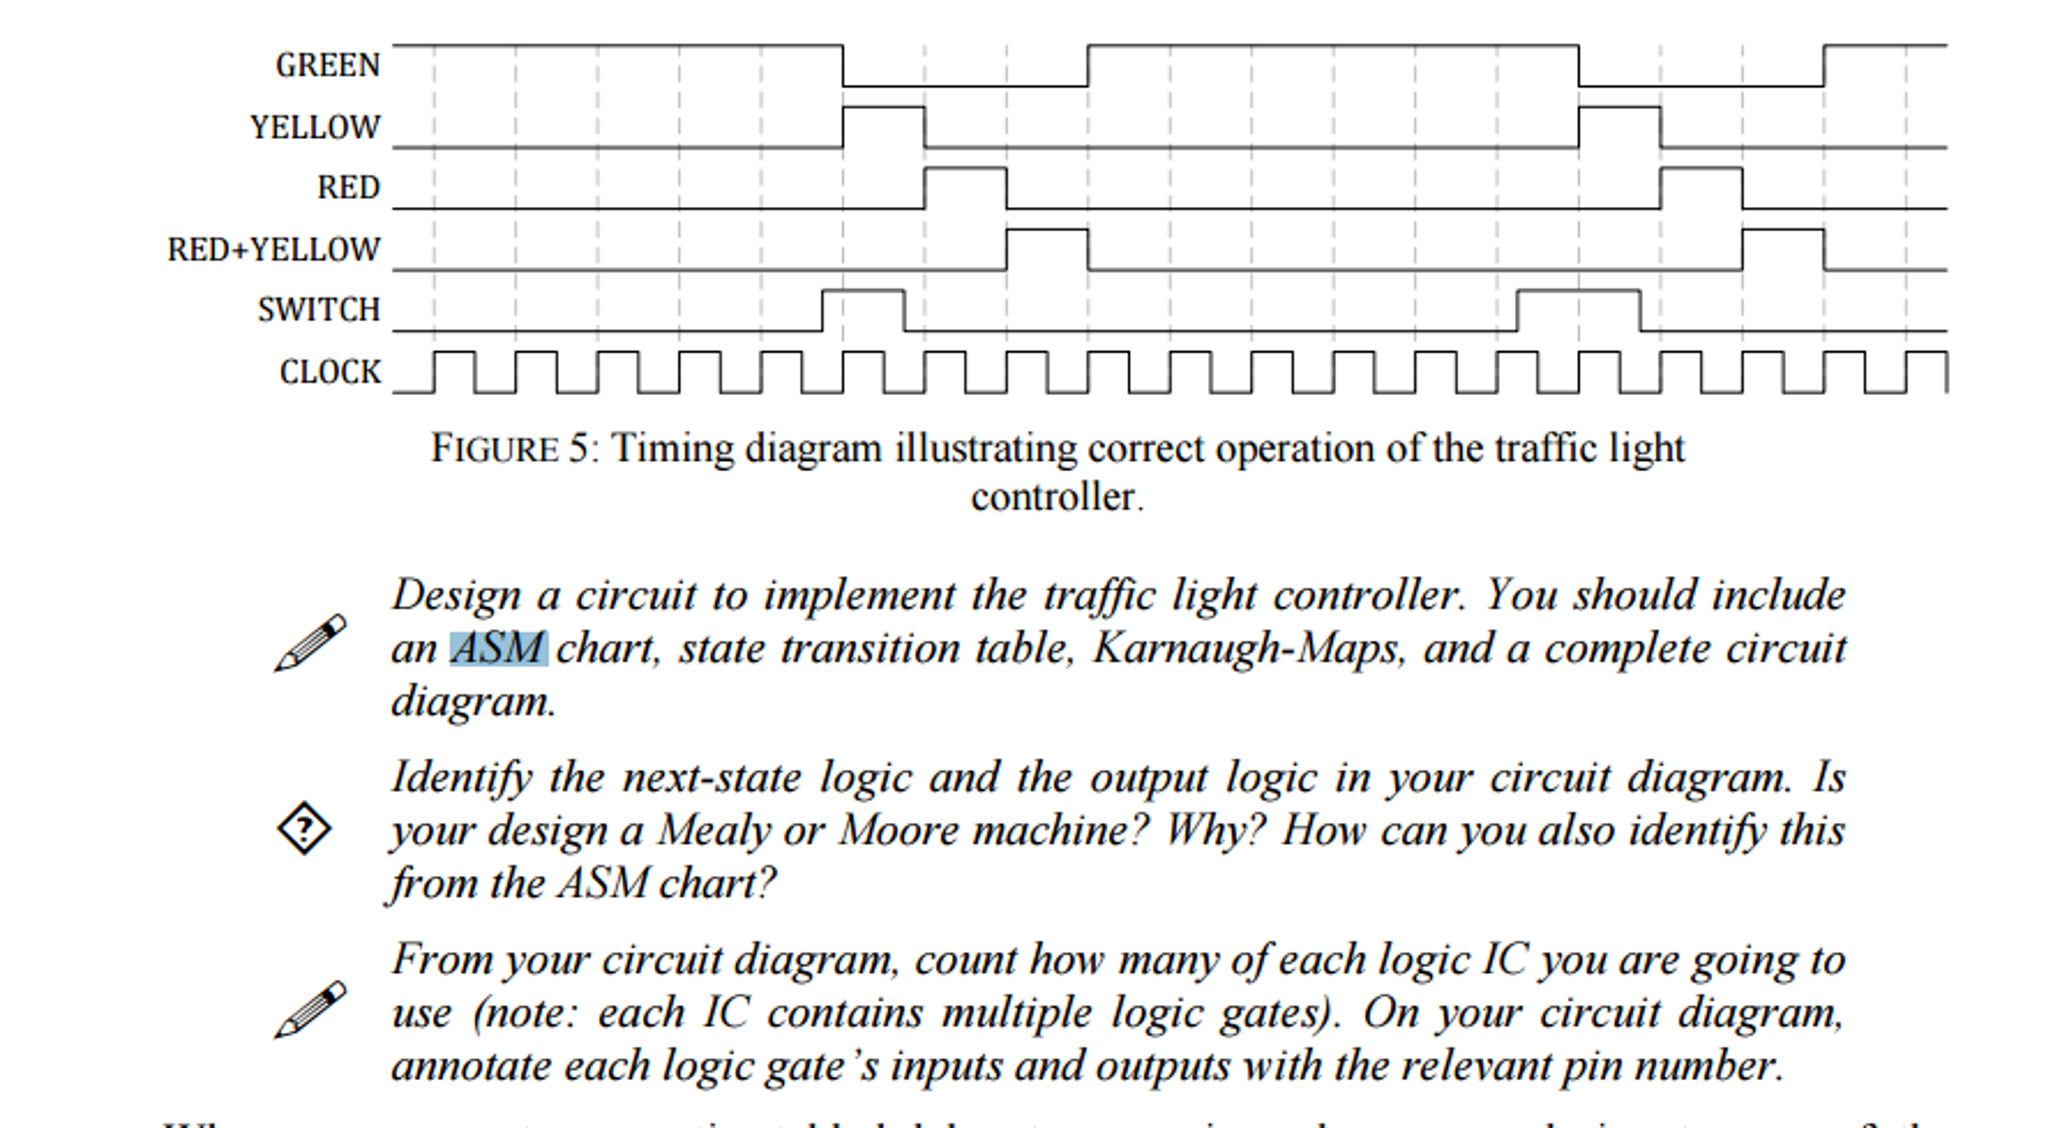 Design A Circuit To Implement The Traffic Light Co... | Chegg.com